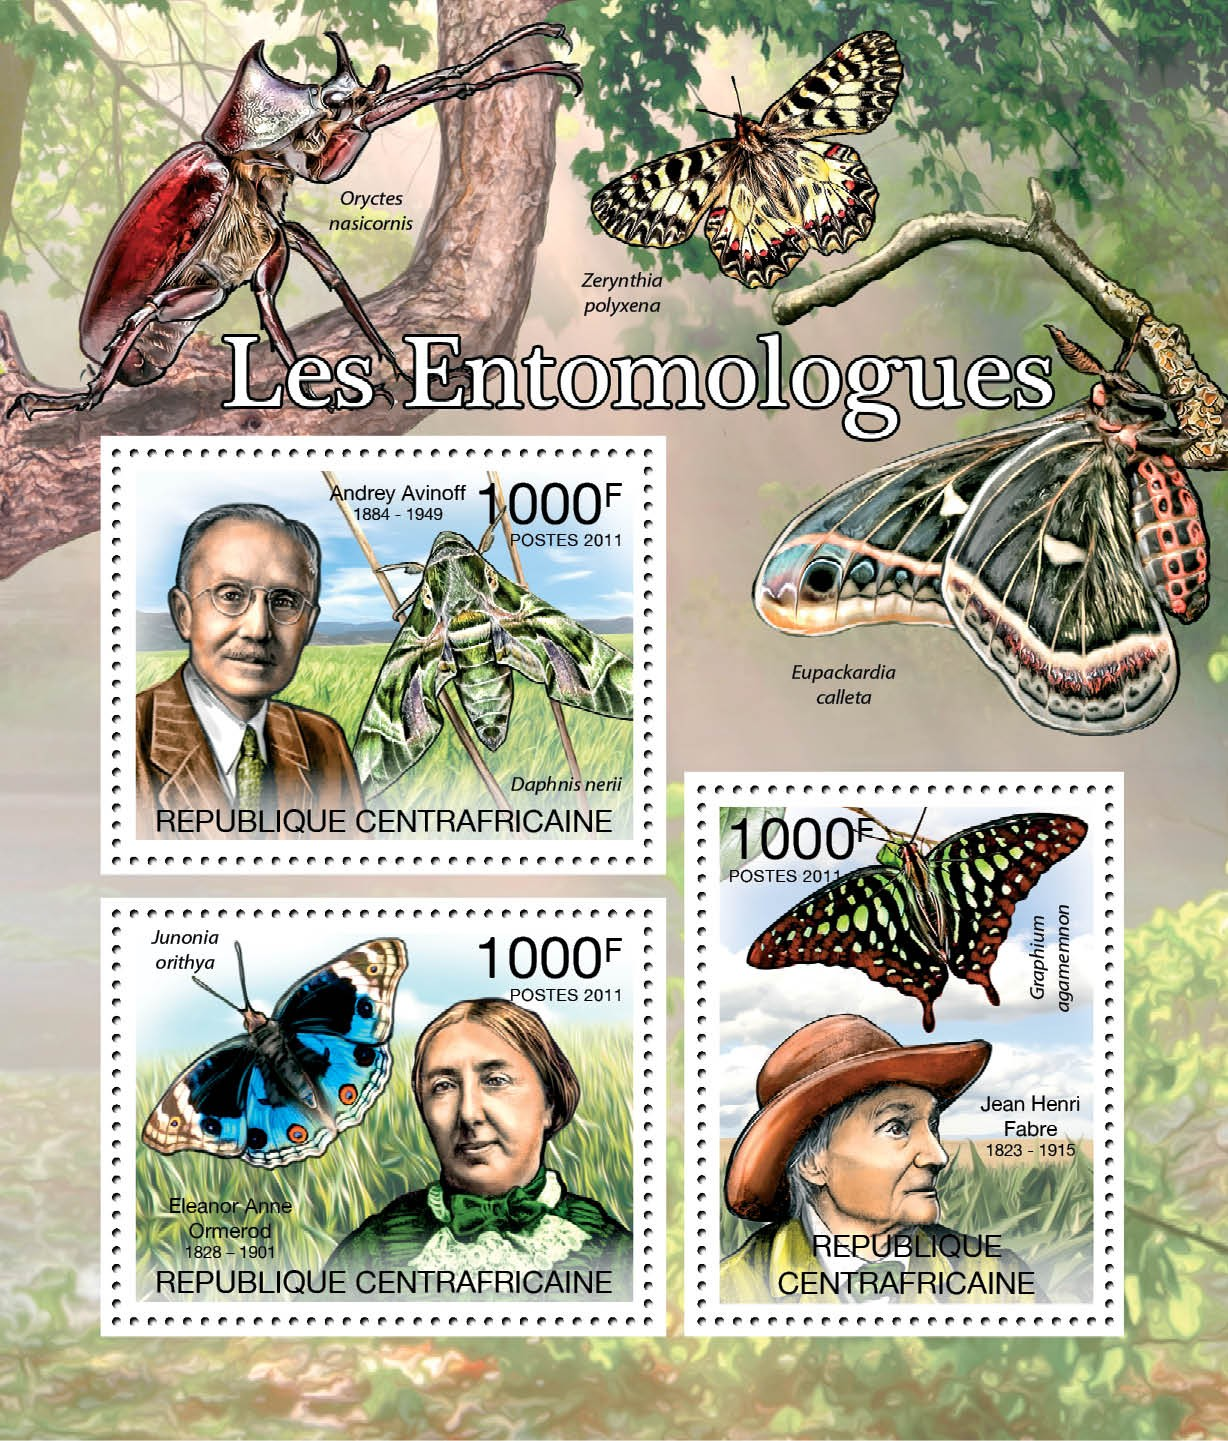 Entomologists & Butterflies, (A.Ainoff, E.A.Ormerod, J.H.Fabre). - Issue of Central African republic postage stamps